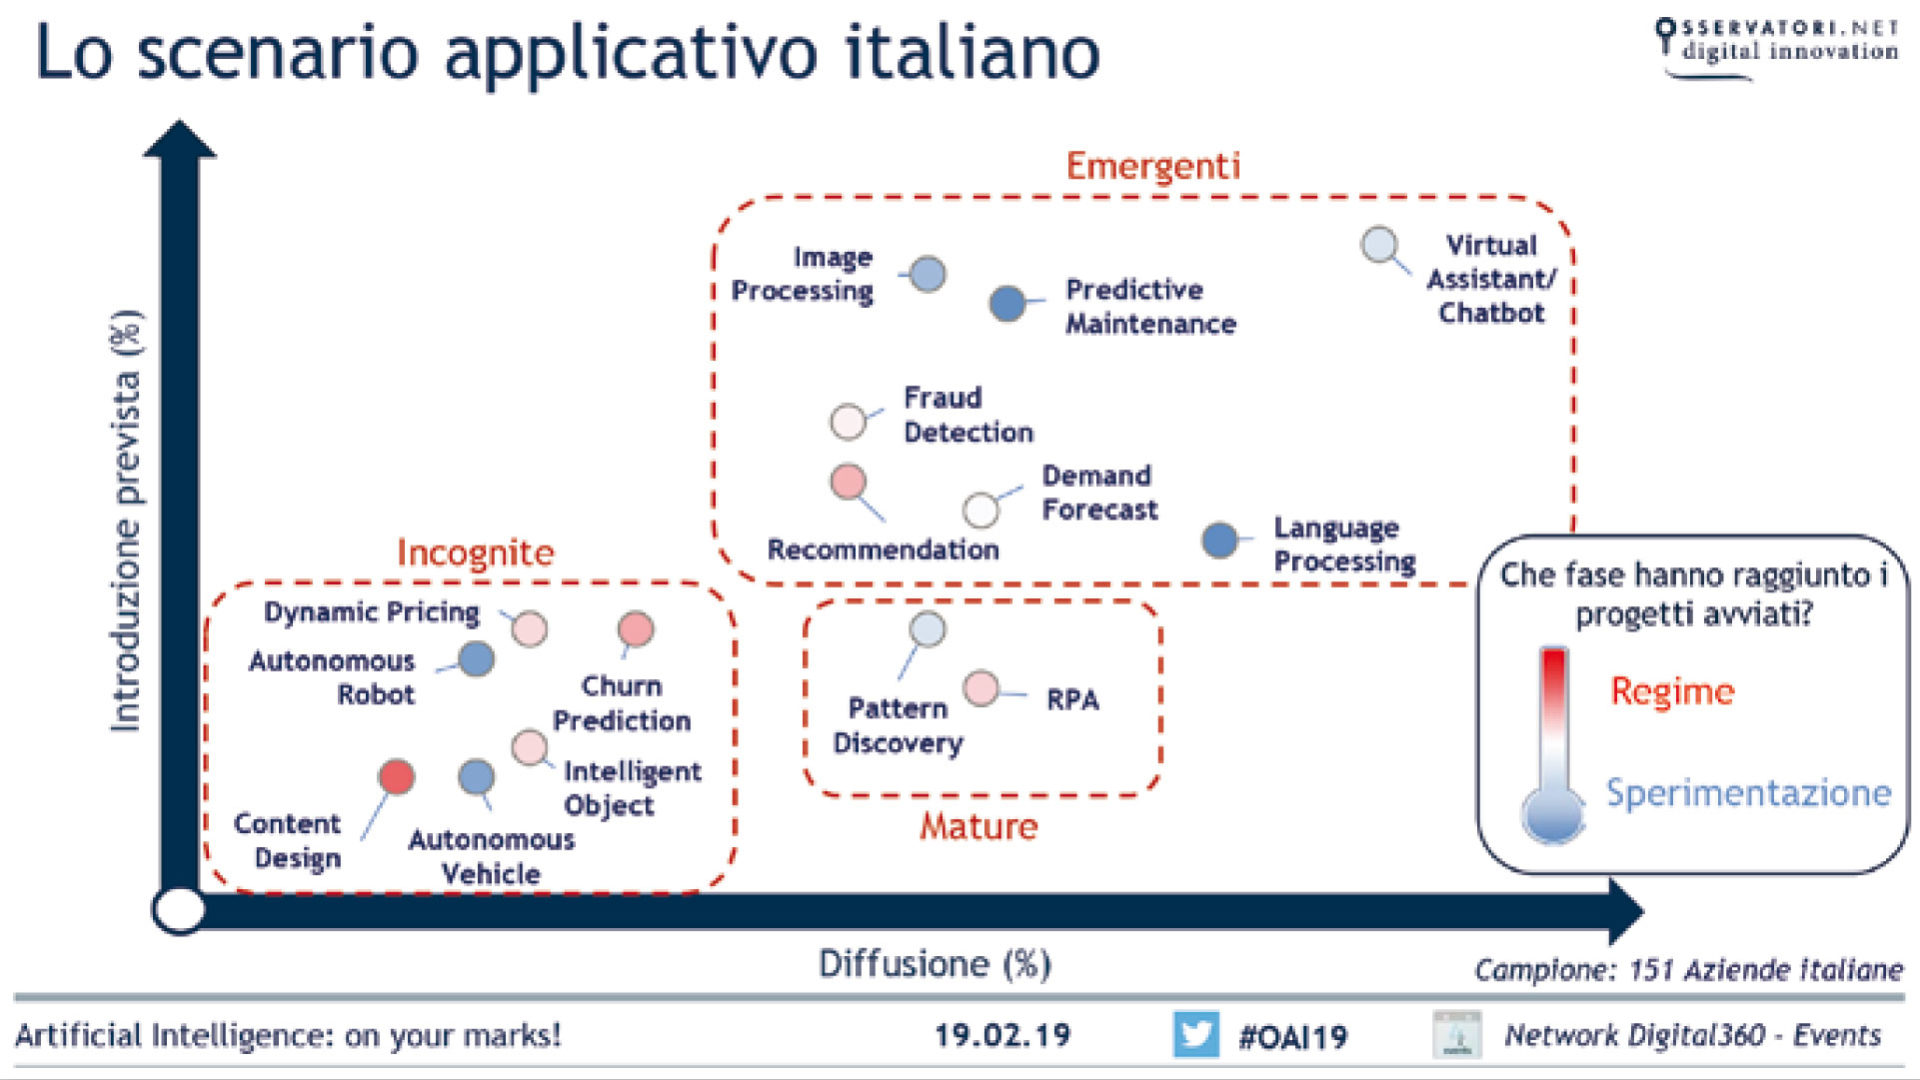 grafico che mostra Lo scenario applicativo dell'AI in Italia